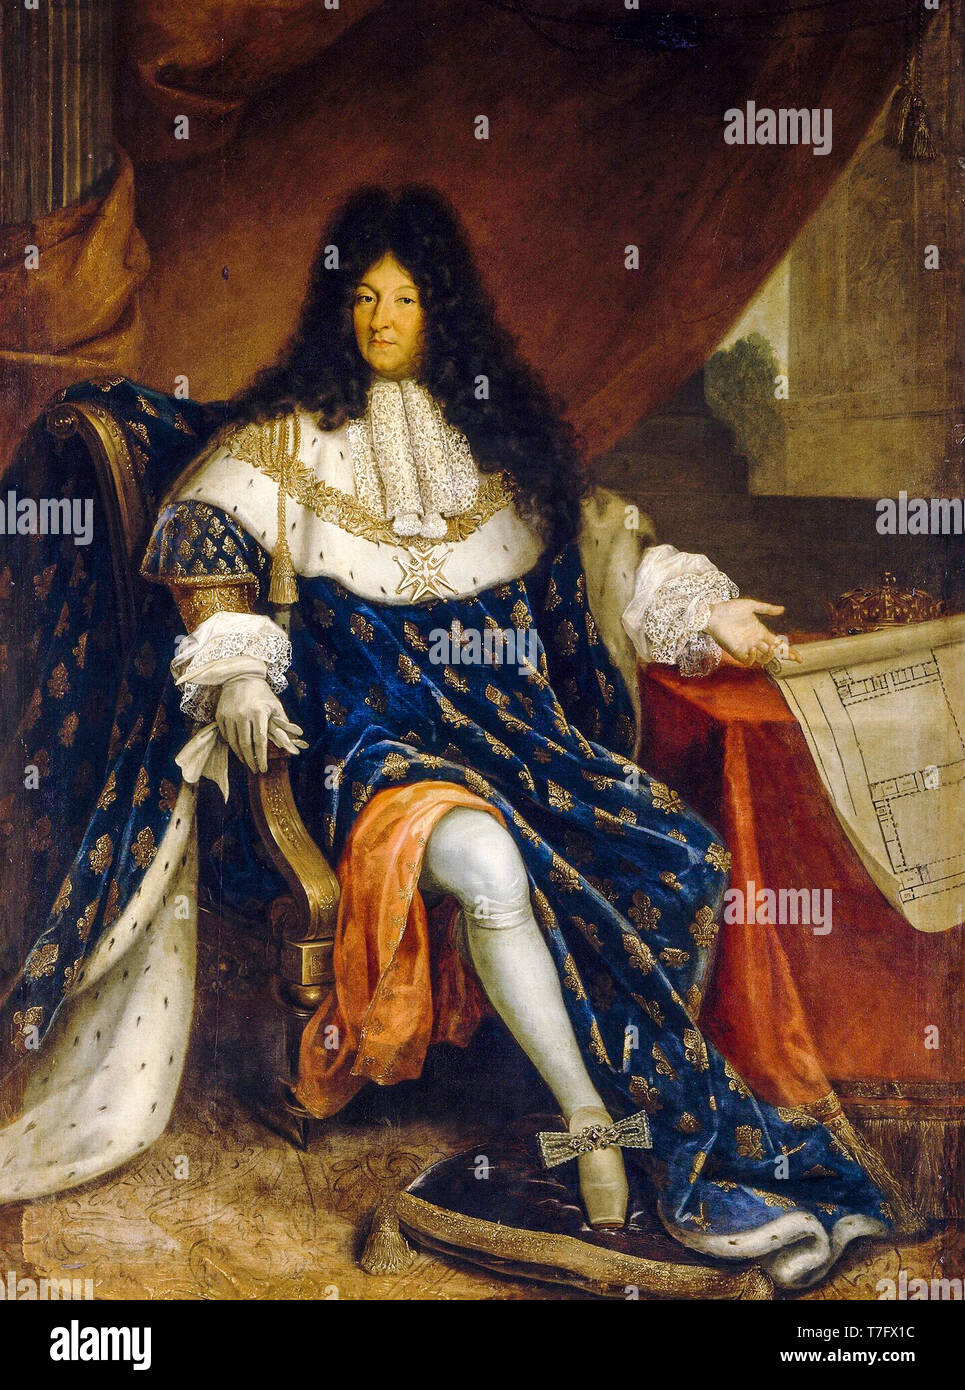 Portrait of Louis XIV of France (1638-1715) holding the plan of the royal house of Saint-Cyr, dressed in coronation robes, Nicolas-René Jollain, 18th Century - Stock Image